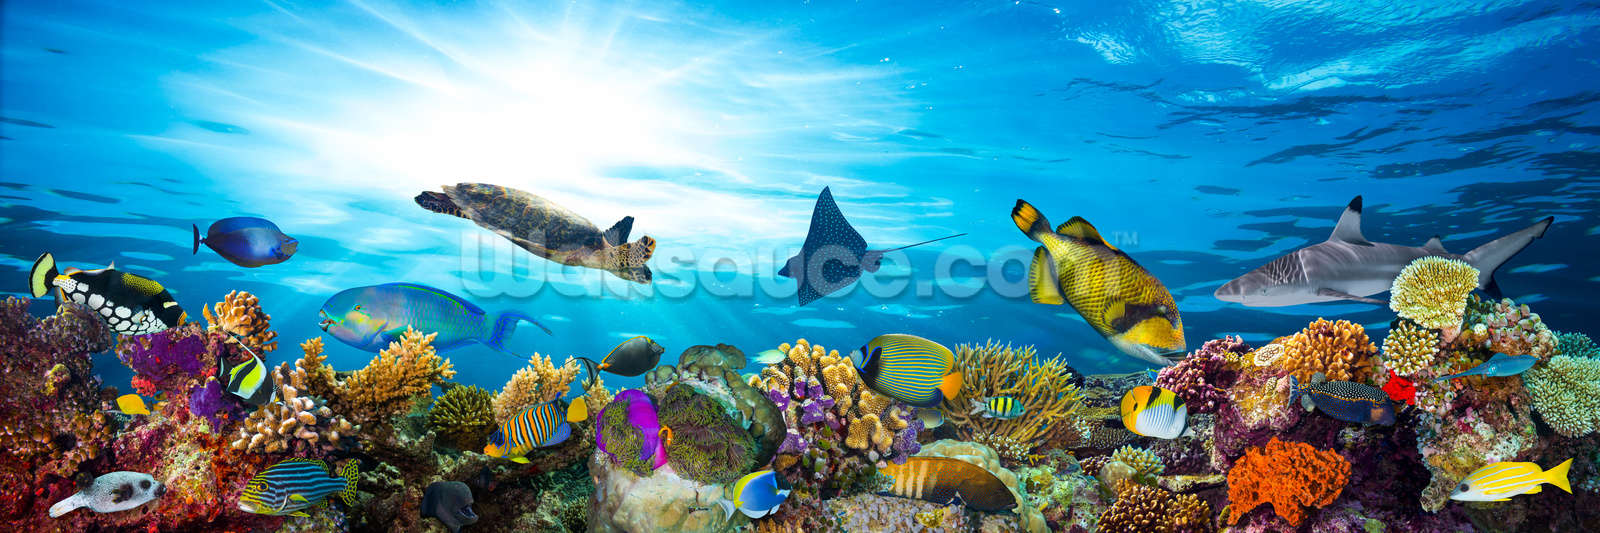 Sea Life Coral Reef Panorama Wallpaper Mural